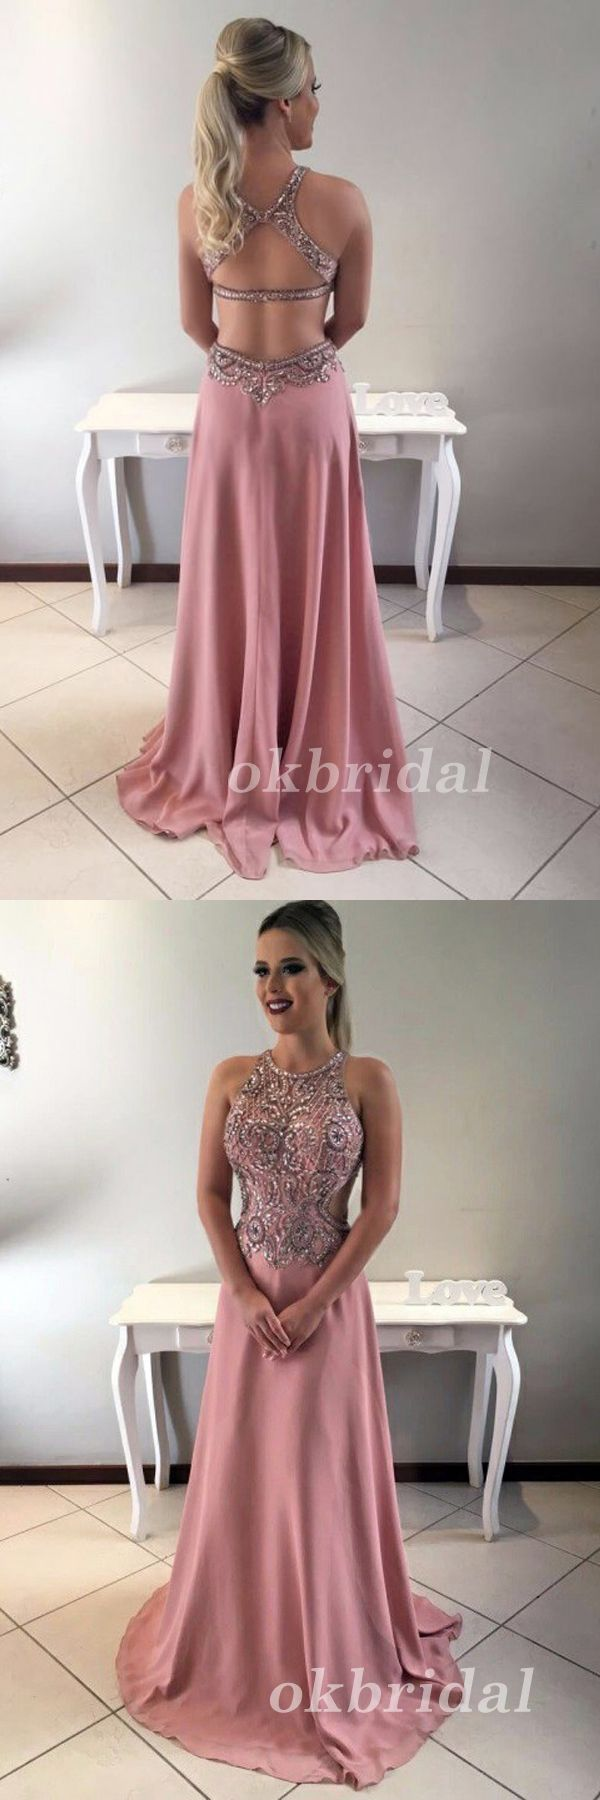 Chiffon Prom Dress, Beading Prom Dress, Sexy Prom Dress, Sleeveless Prom Dress, LB0879 #okbridal #promdress #promnight